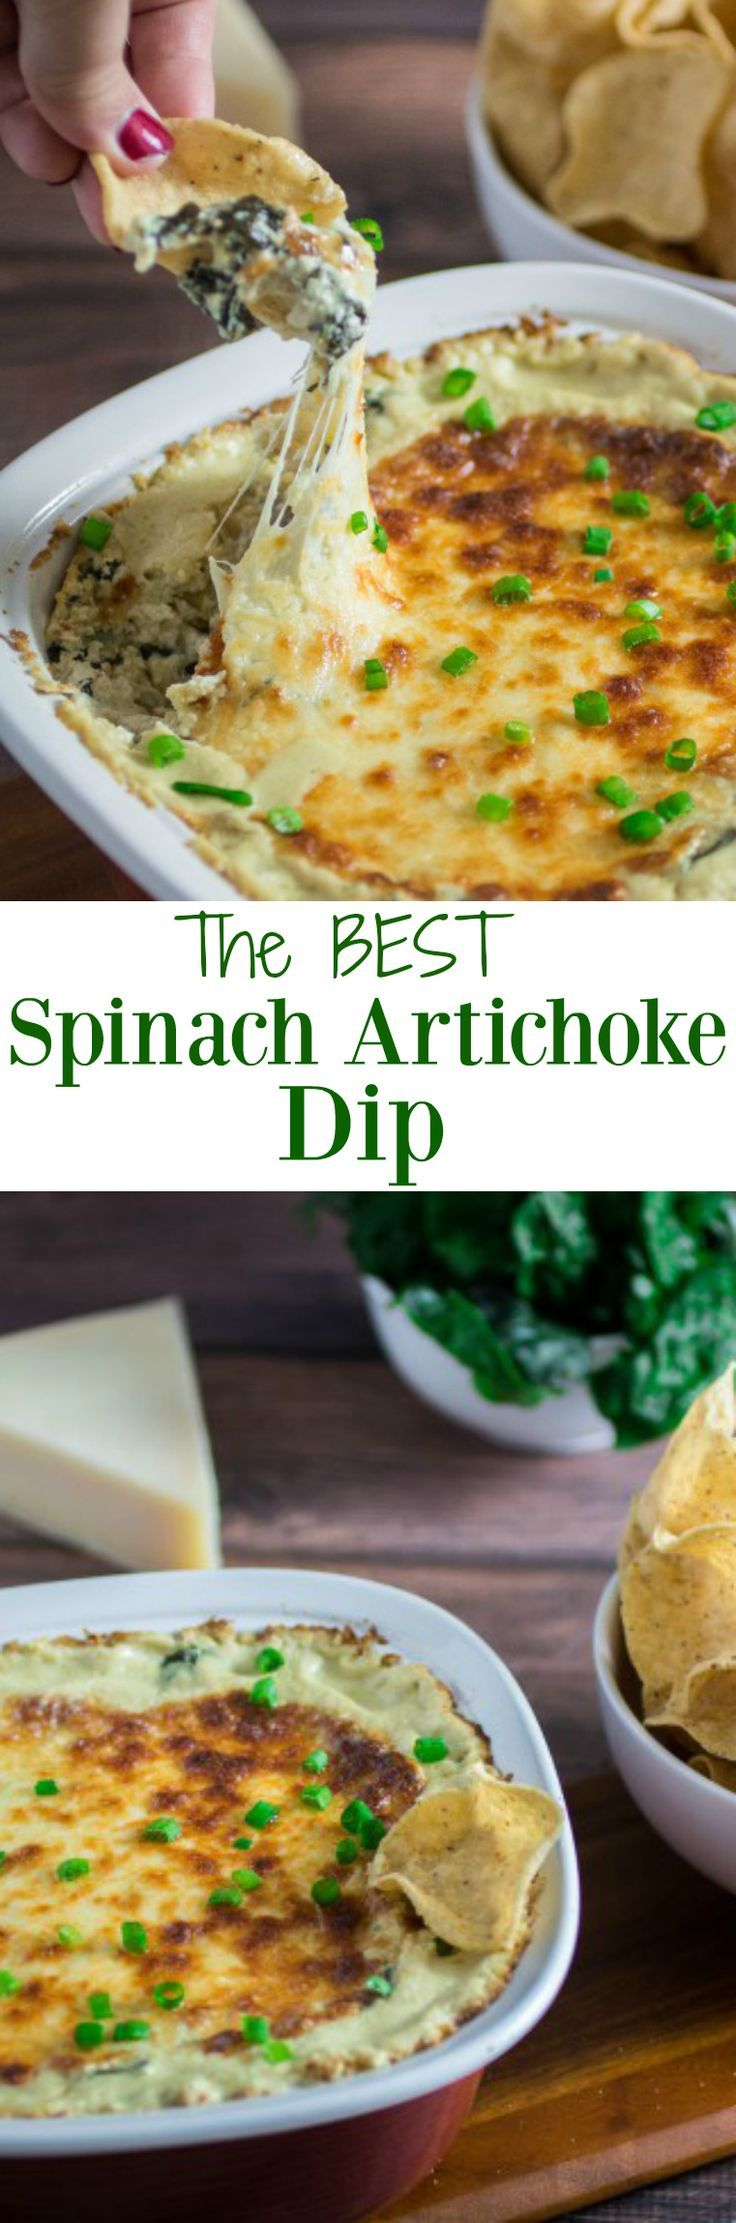 Click this pin to get the recipe, or repin to save for later! Cheesy, rich, and comfortingly creamy, it doesn't get much better than this classic Spinach Artichoke Dip. Topped with mozzarella cheese and baked to perfection, this dip recipe can be served with tortilla chips or a toasted baguette.